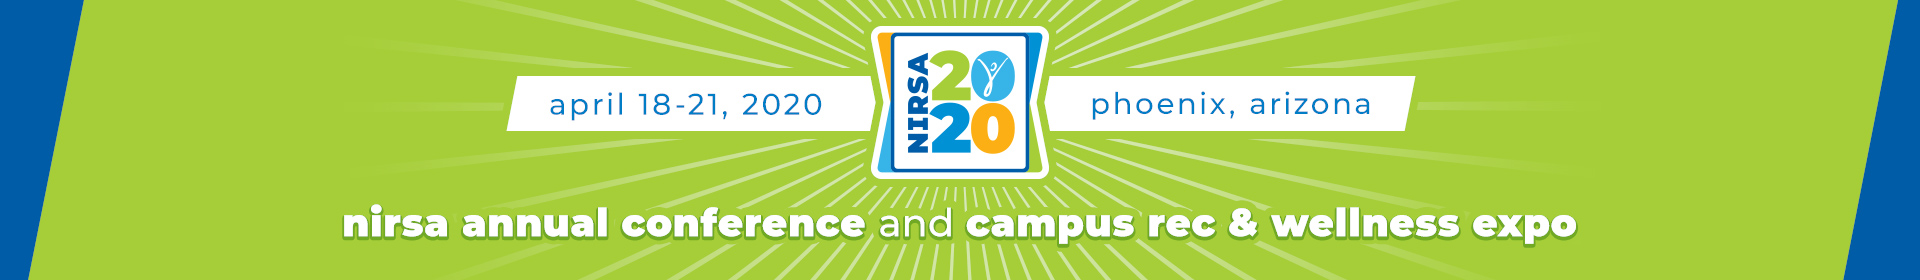 2020 NIRSA Annual Conference & Campus Rec and Wellness Expo Event Banner